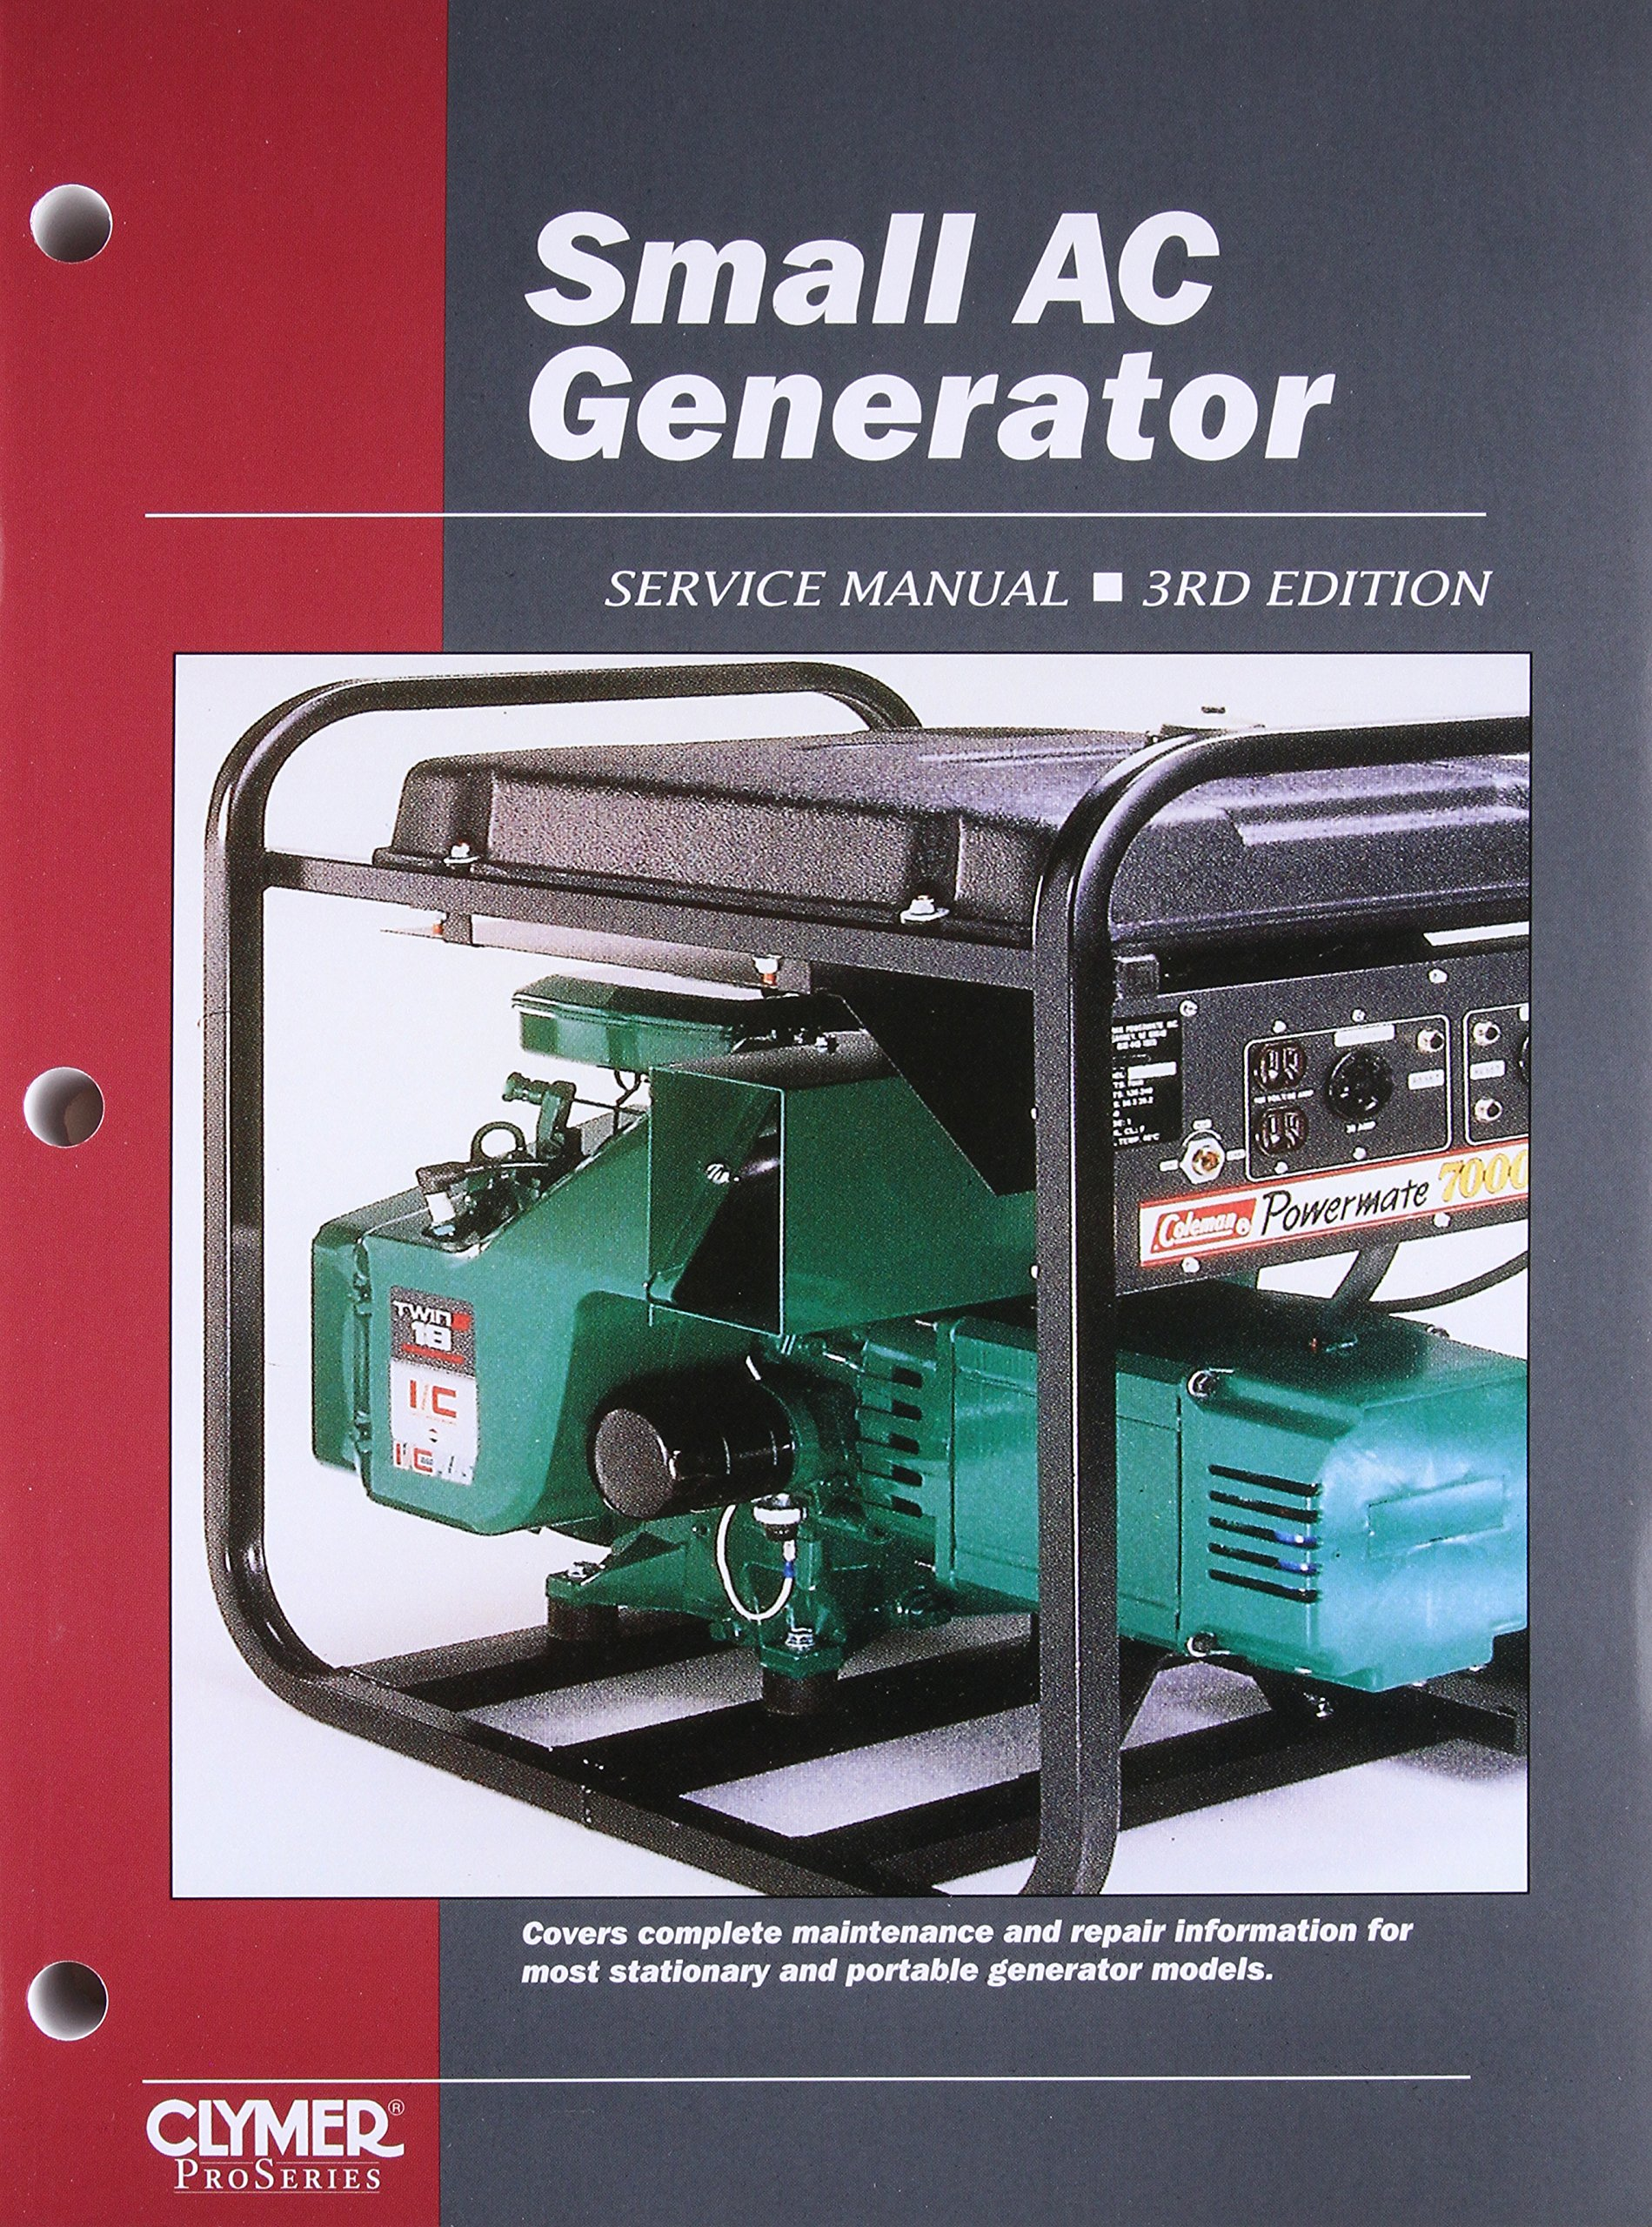 Small AC Generator Service Manual, 3rd Edition: Intertec: 9780872884670:  Amazon.com: Books